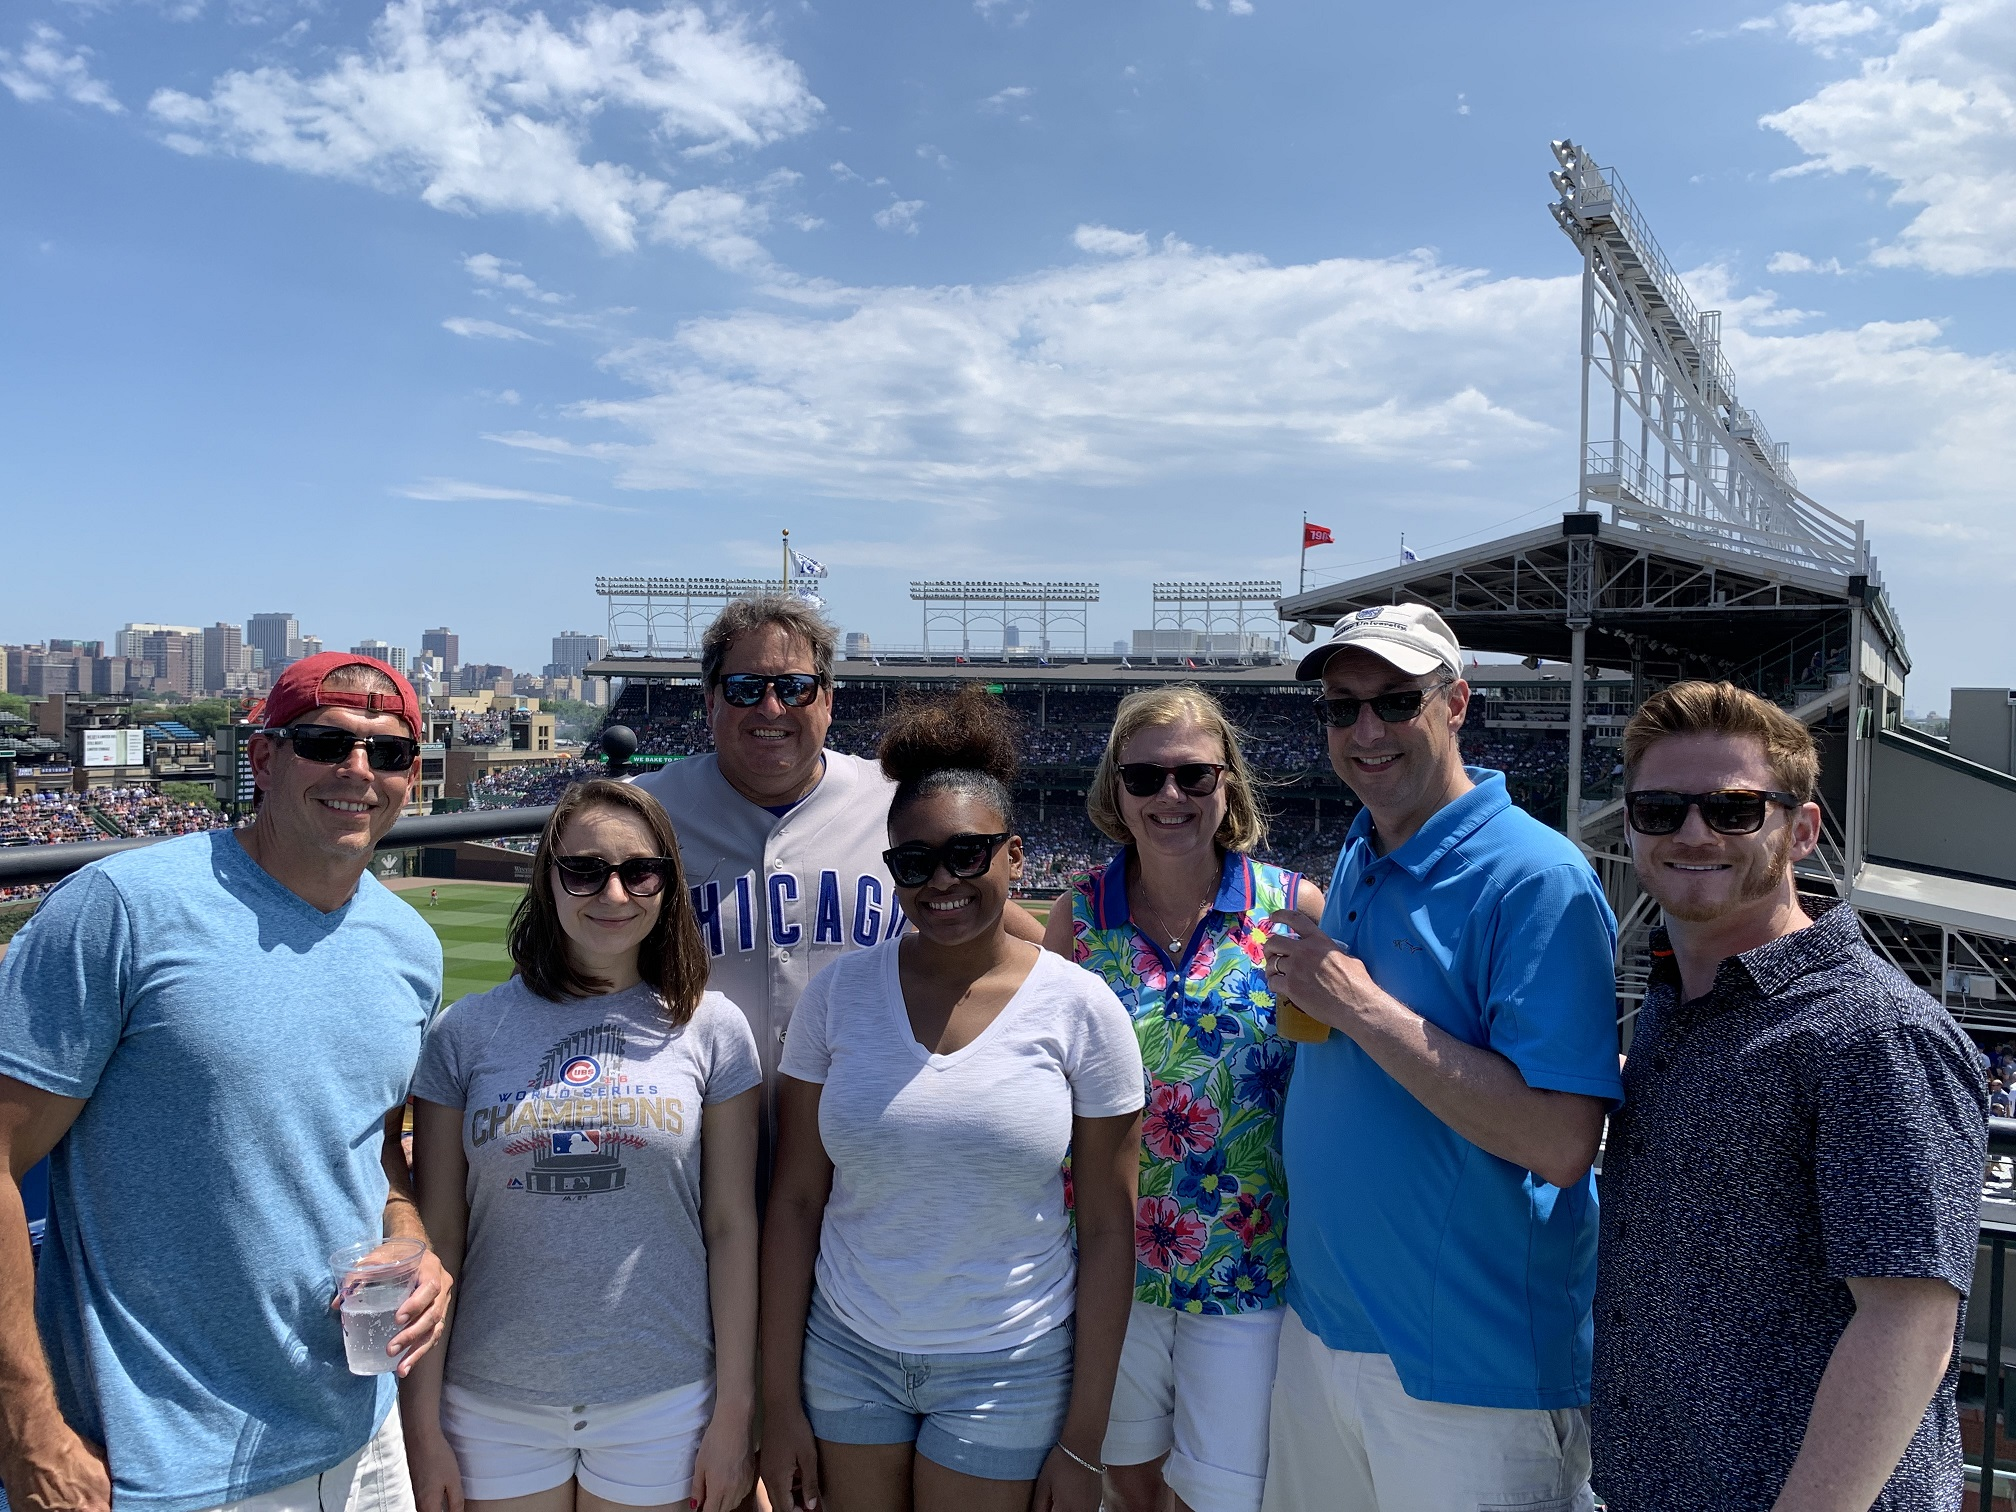 IMC enjoyed a beautiful day at Wrigley Field, watching the Cubs play during a 2019 summer group outing.